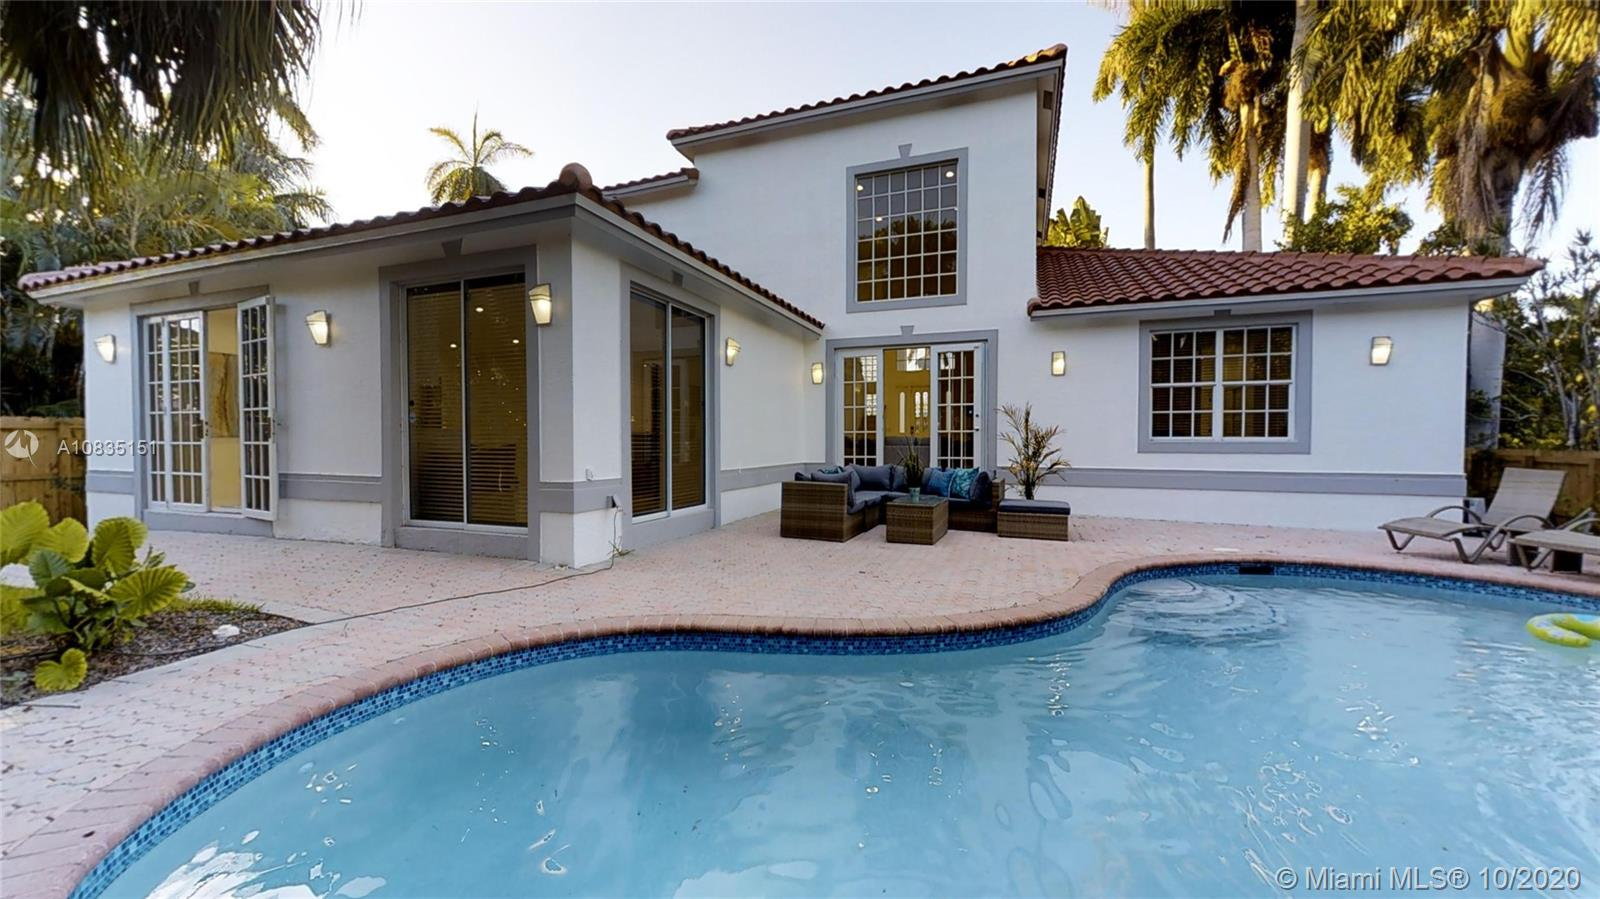 1350  Hollywood Blvd  For Sale A10835151, FL